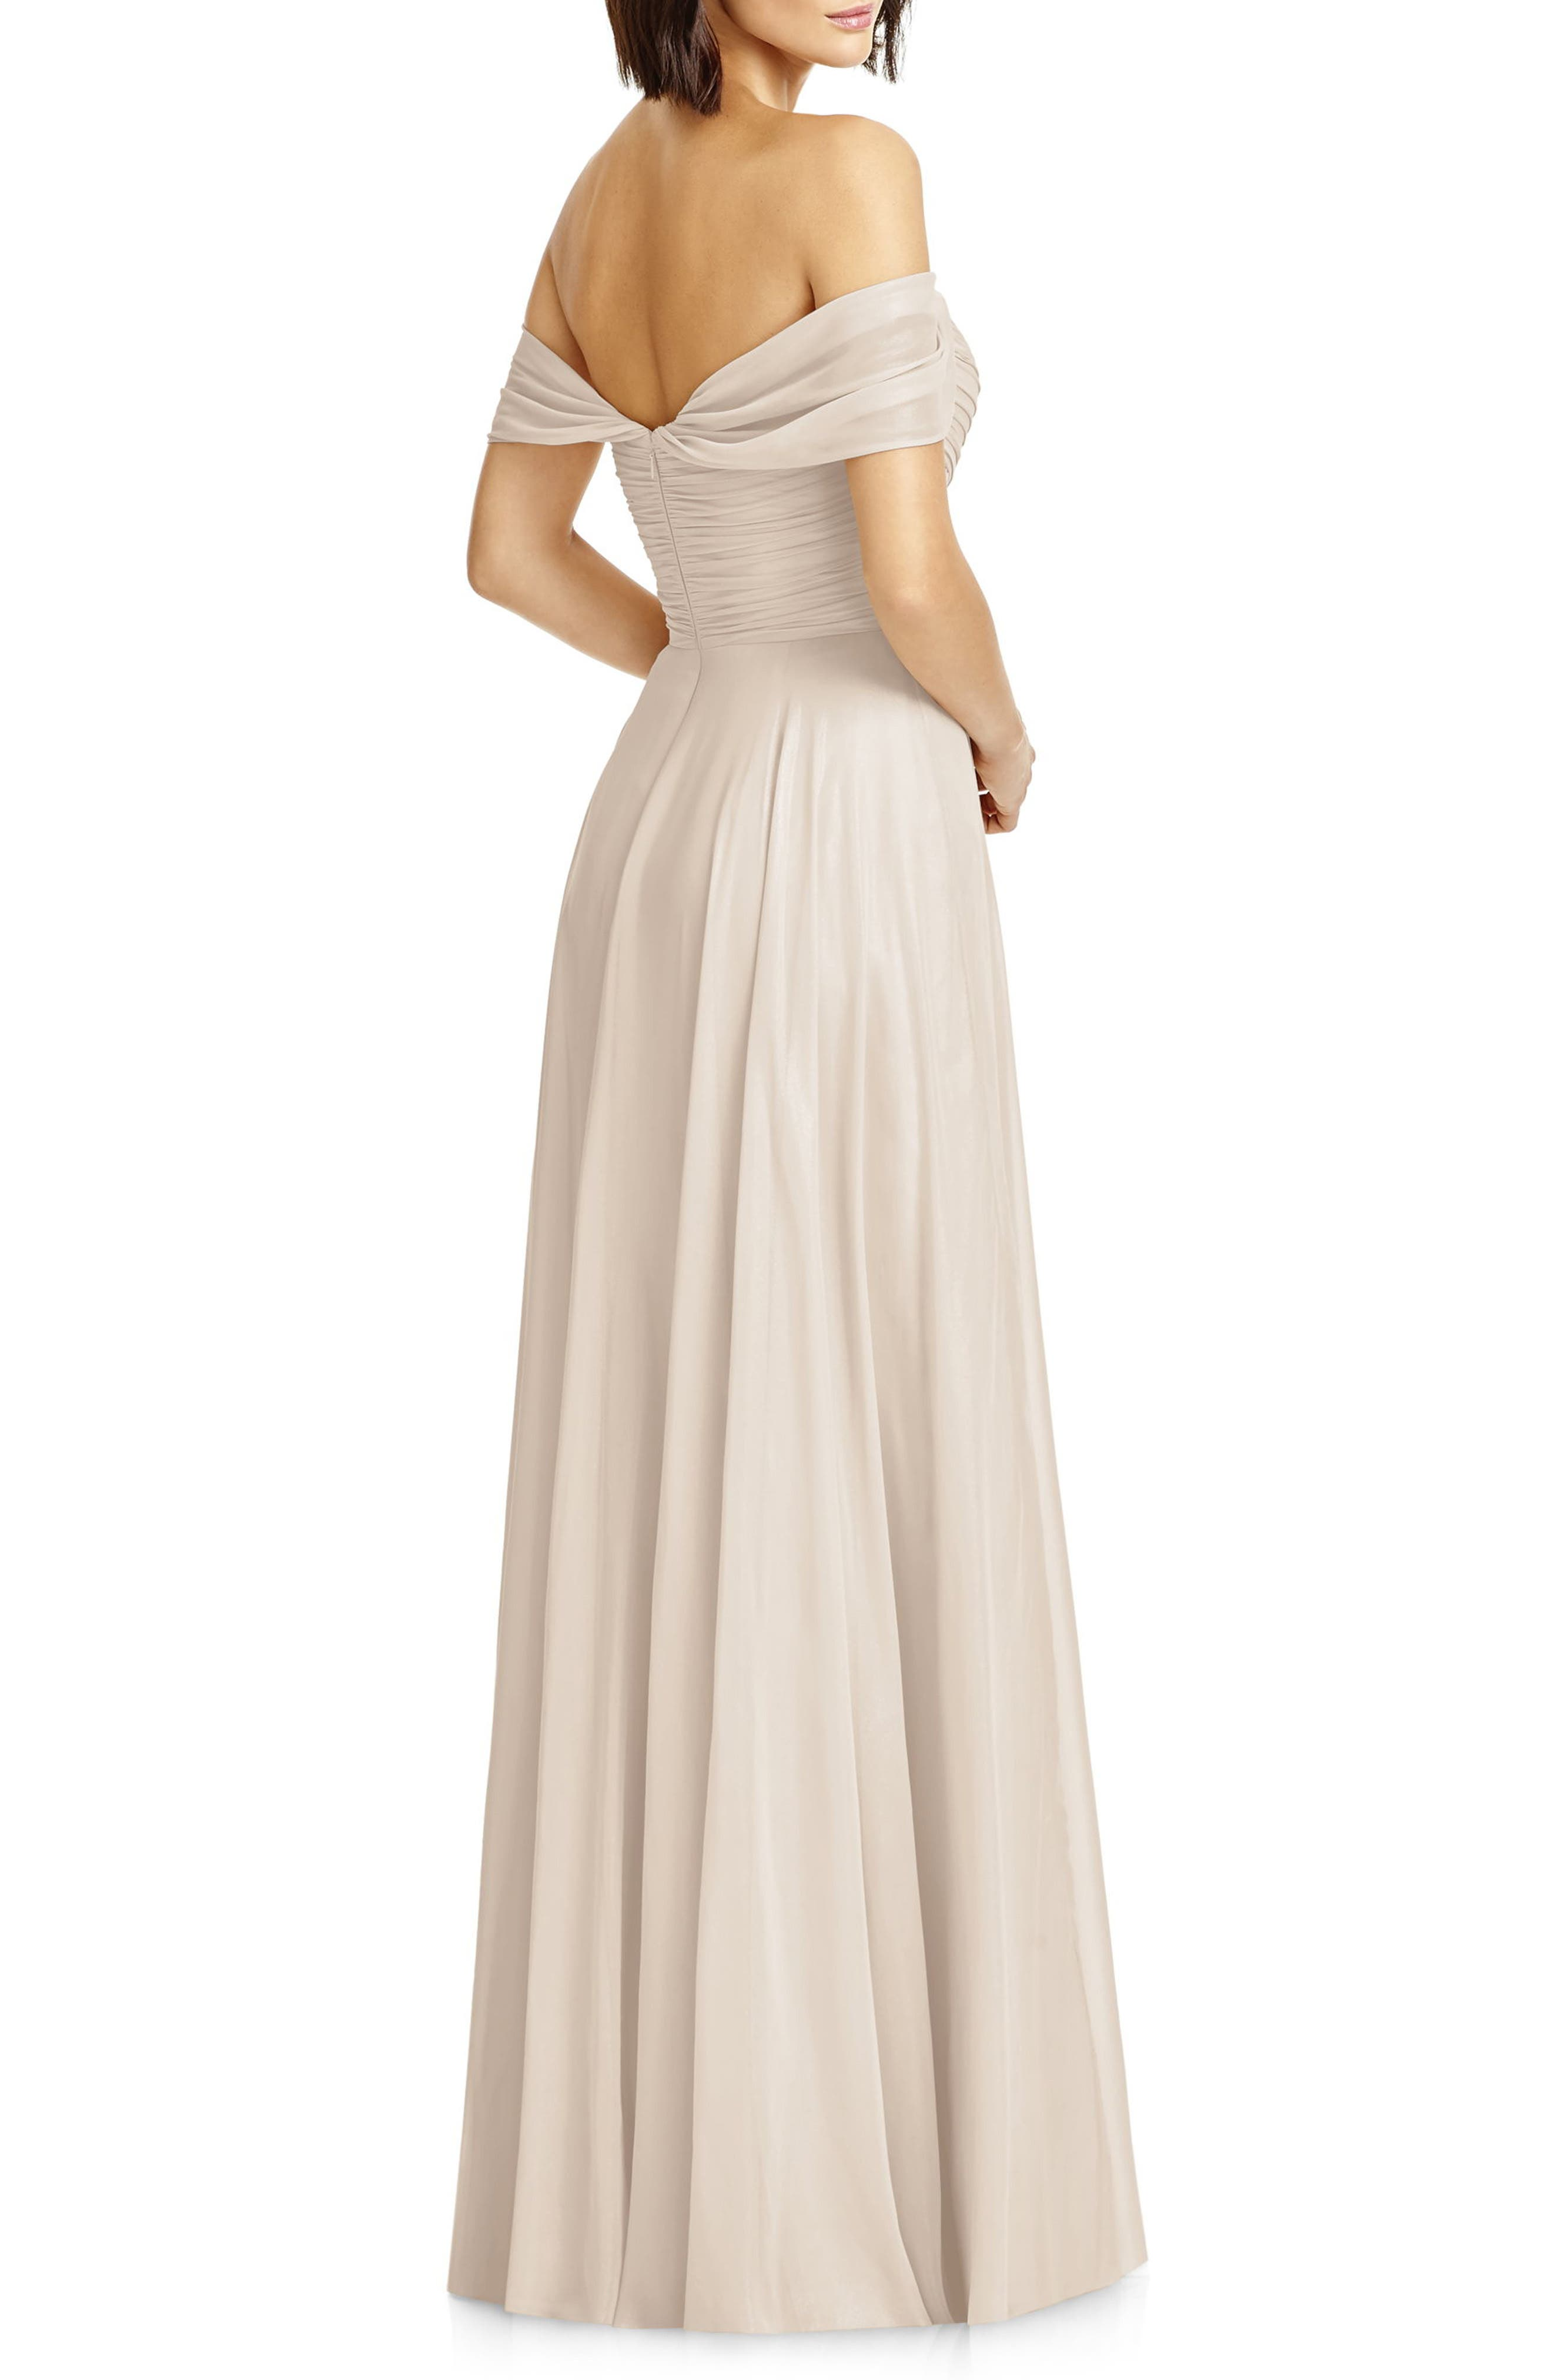 Dessy collection bridesmaid wedding party dresses nordstrom ombrellifo Gallery